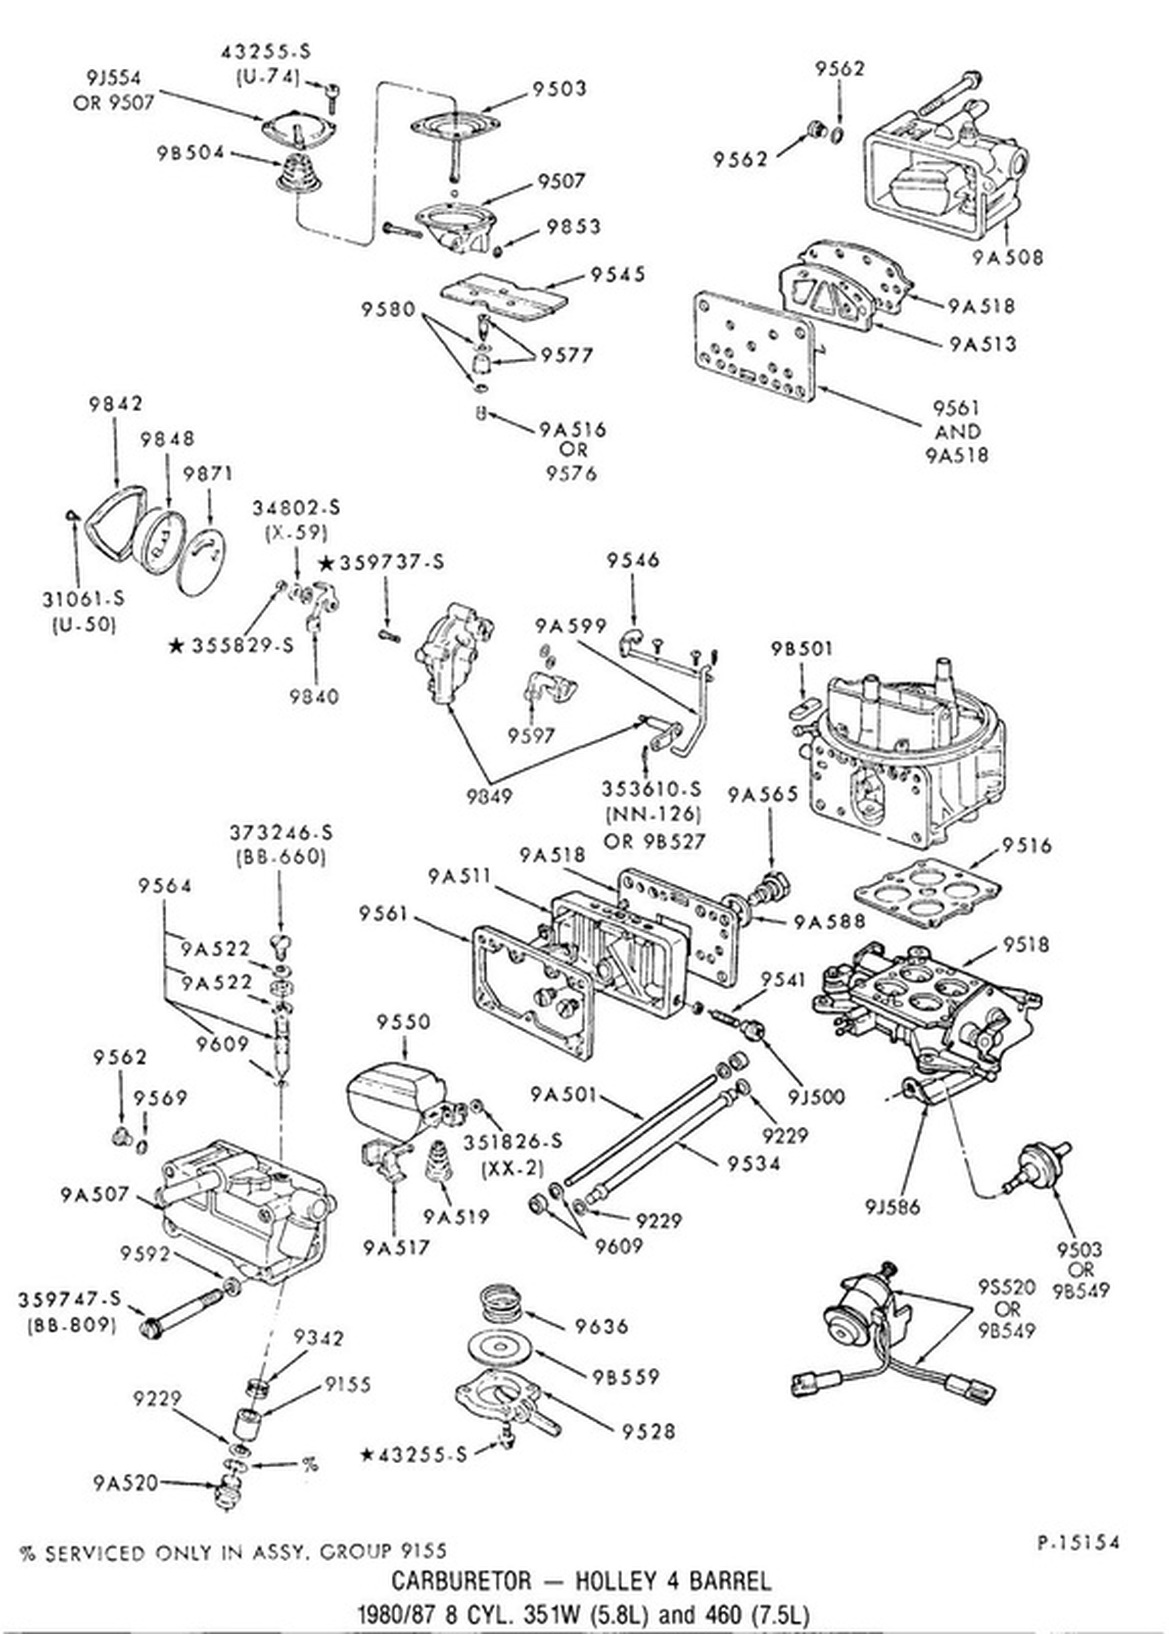 hight resolution of how to use this document to use this document you need a carburetor part number starting with 95 5 if you don t have that then go to the page entitled